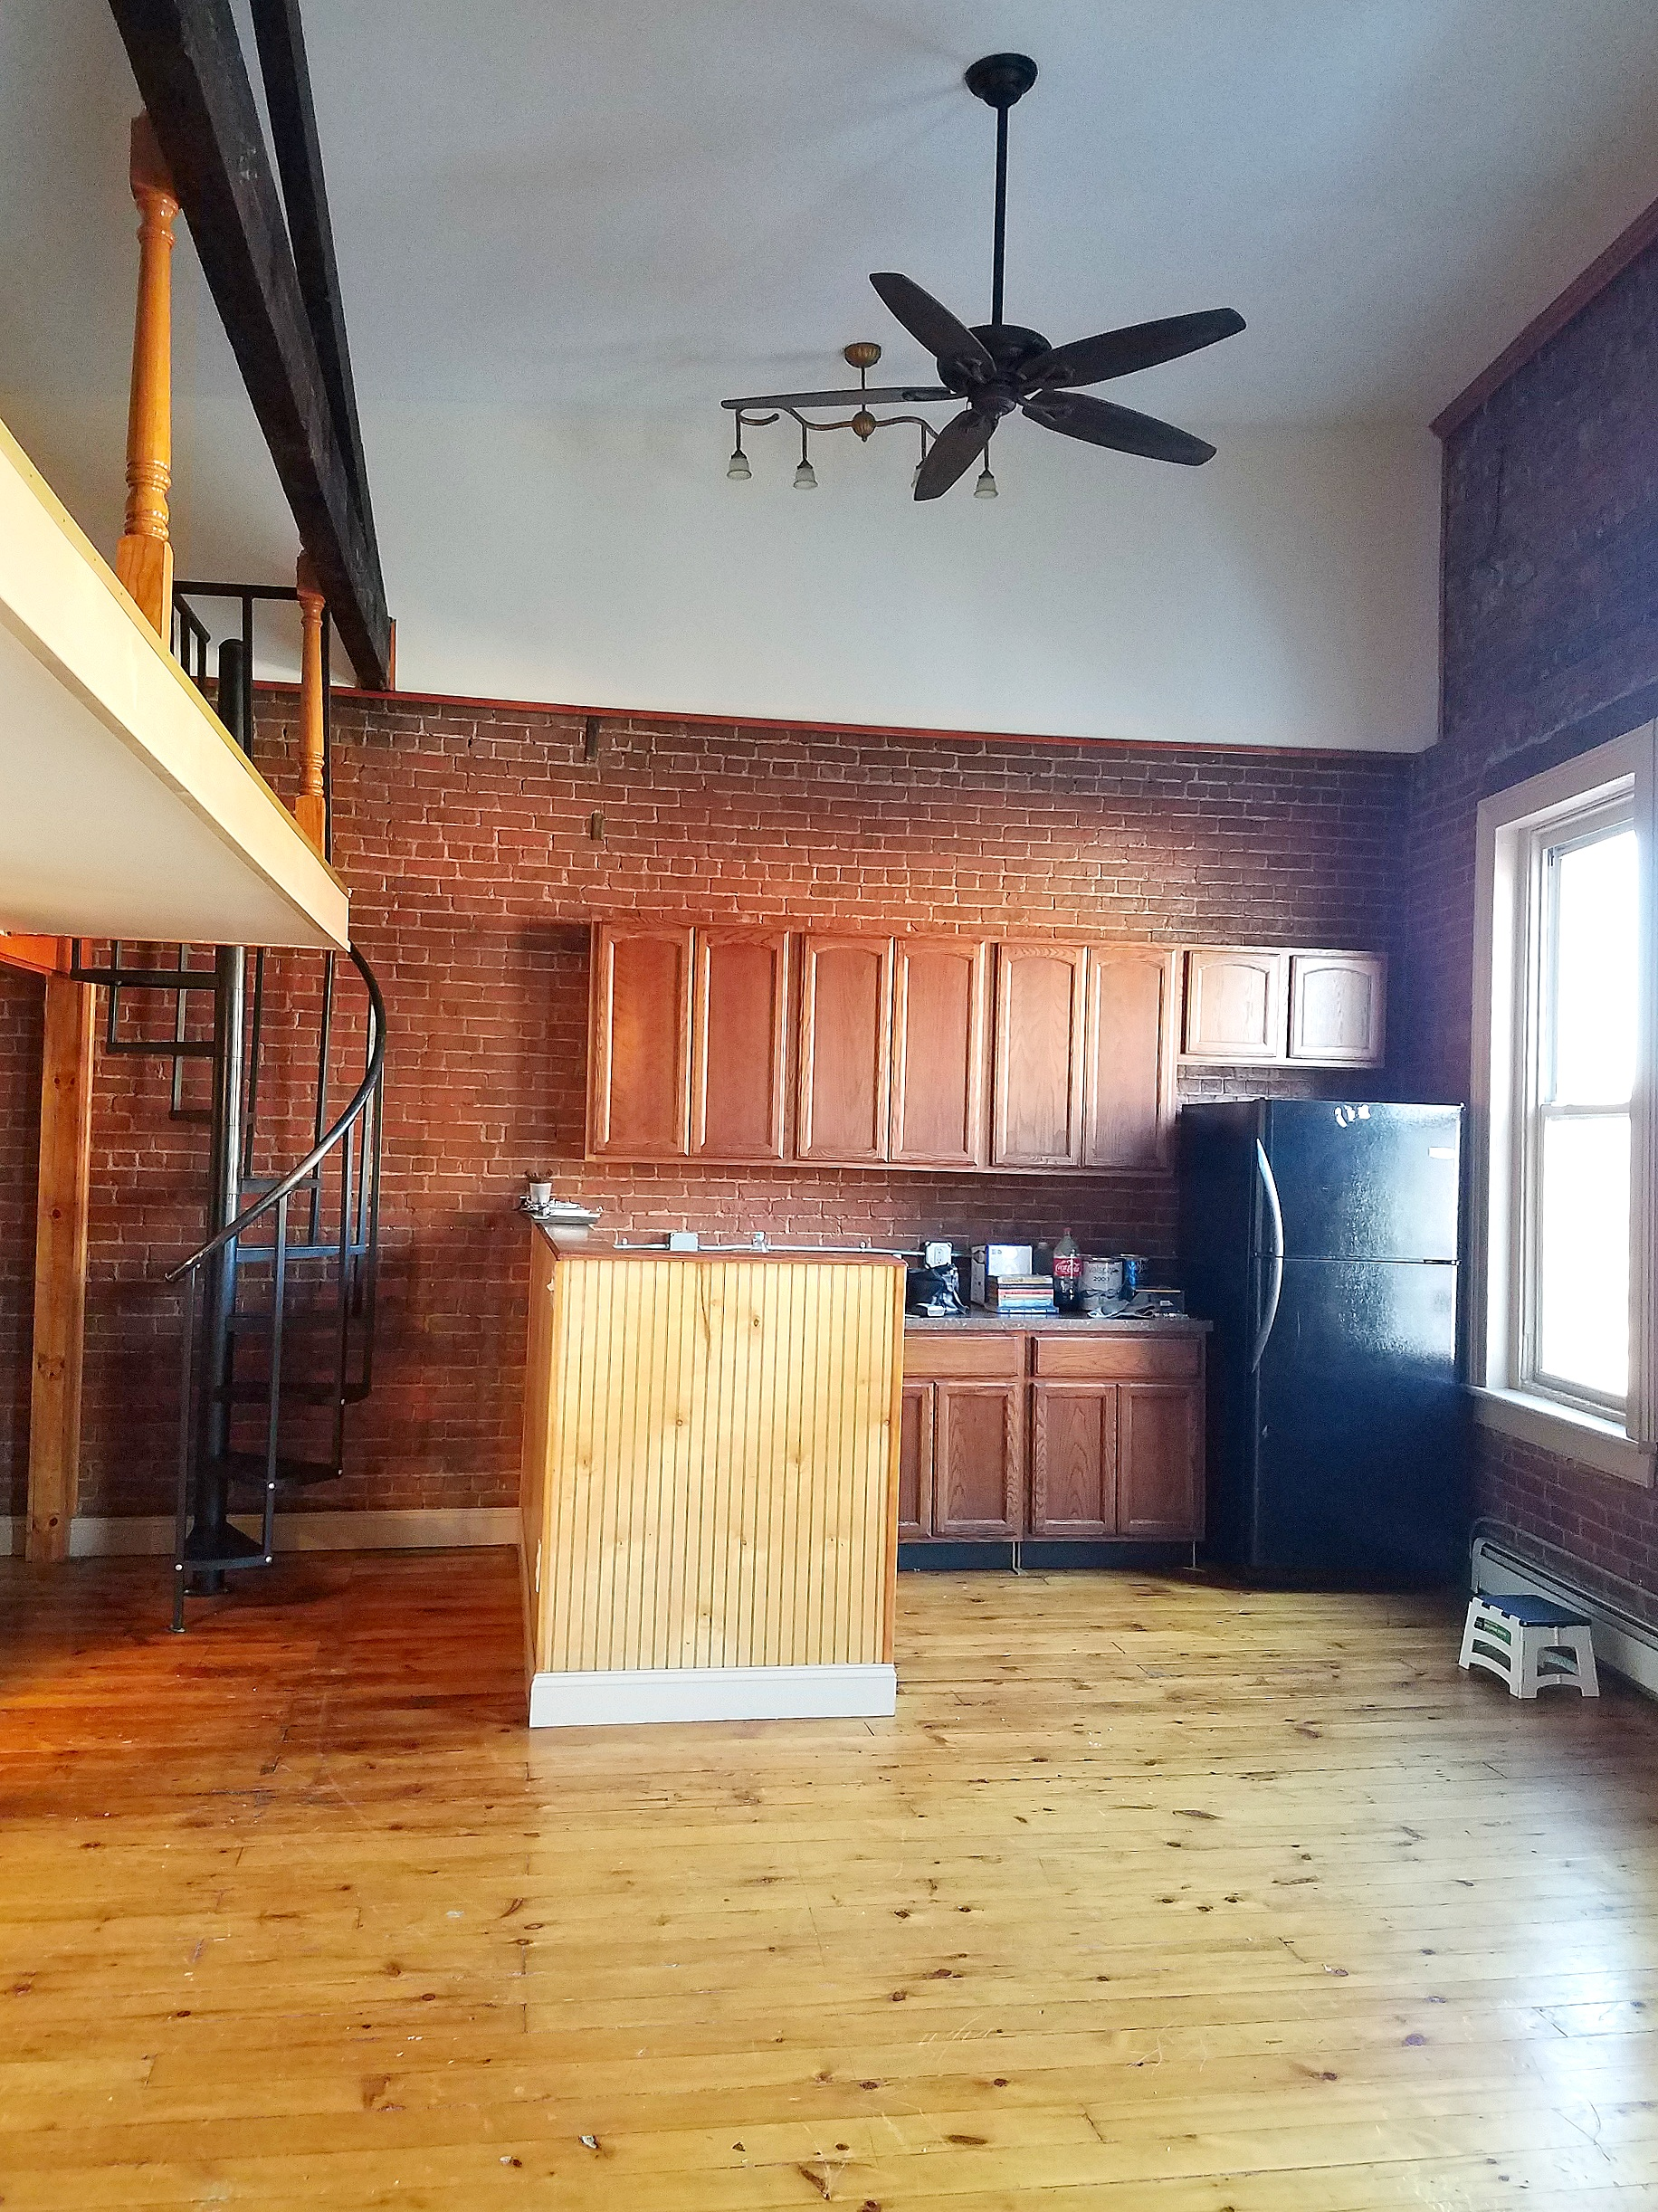 Grand Civil War Era NYC Style 1 BR Loft: Wappingers Apartment